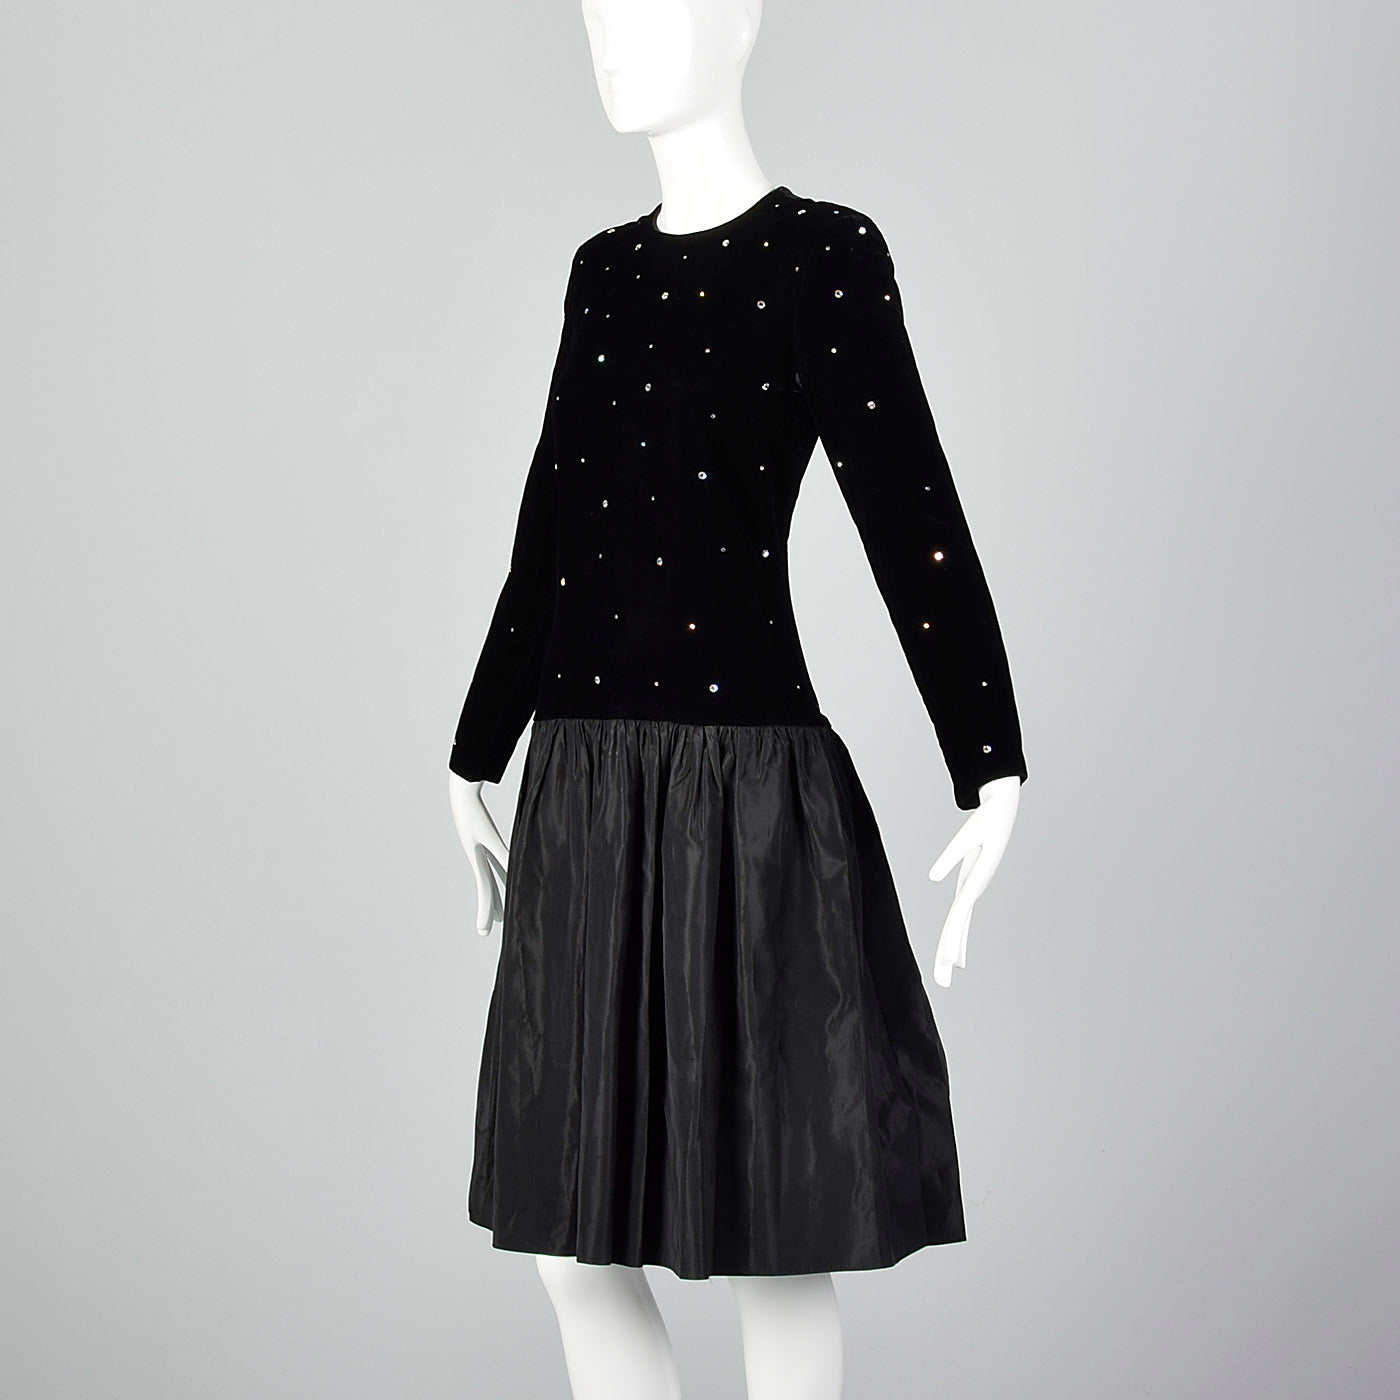 1980s Bill Blass Black Evening Dress with Rhinestones